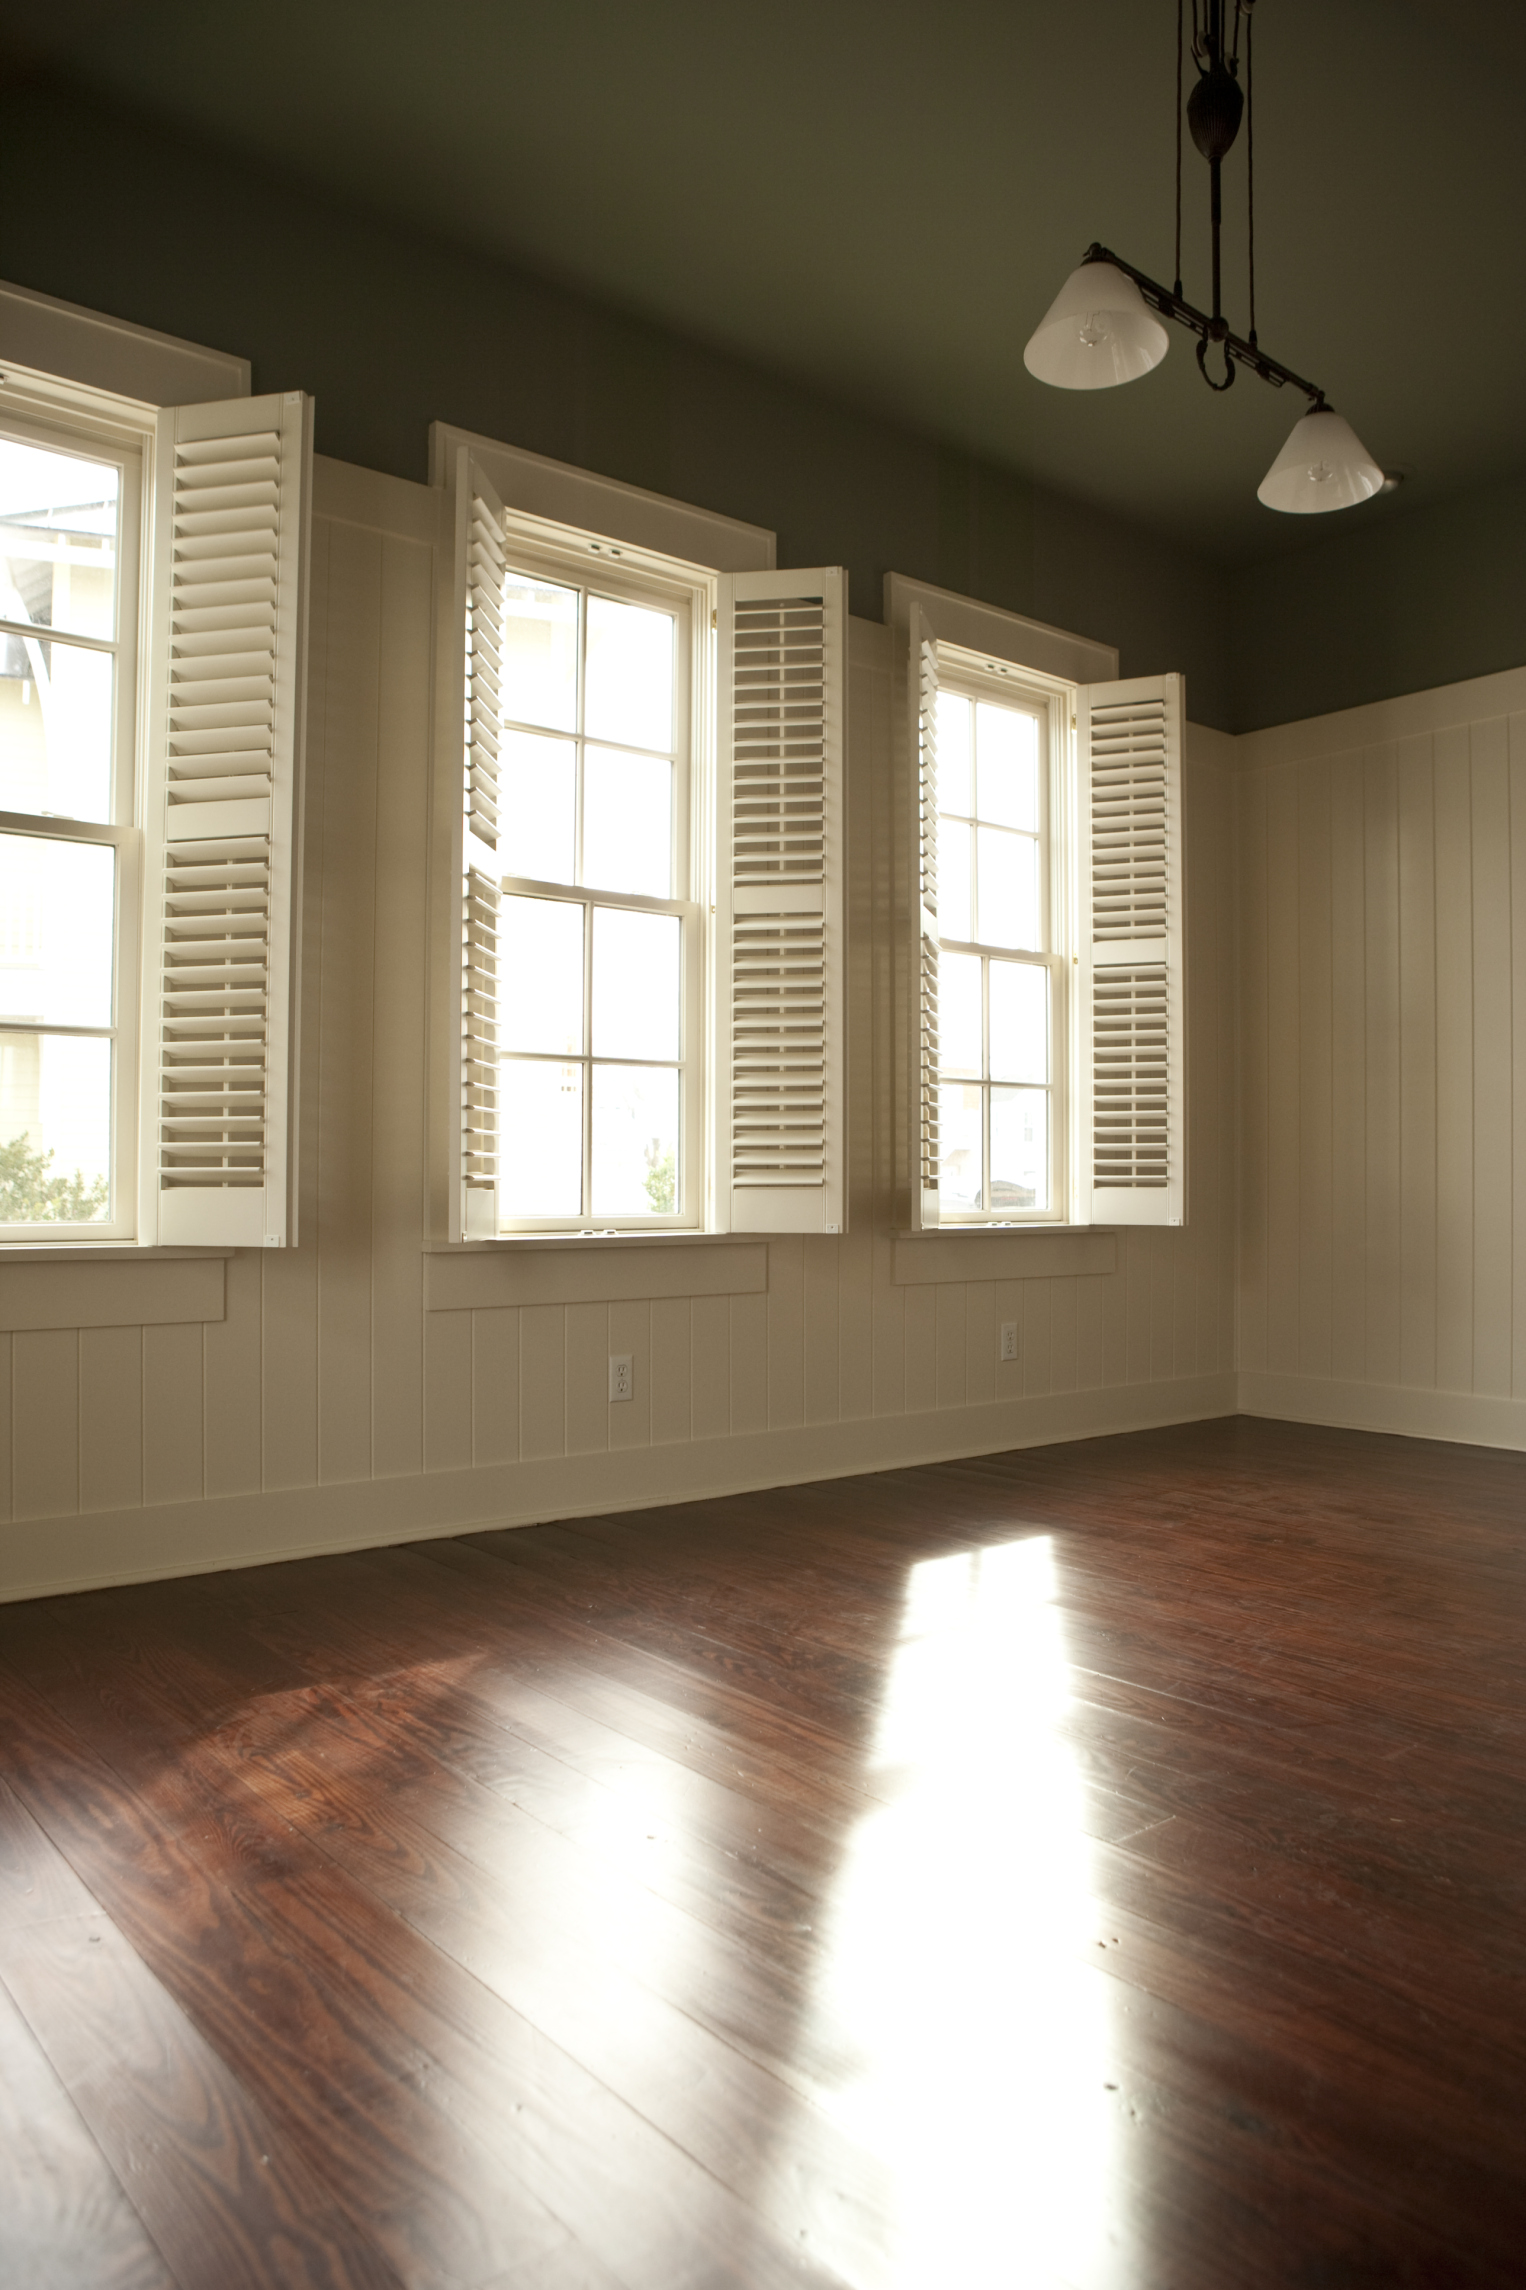 How to Make Hardwood Floors Shine Without Toxic Chemicals | Home Guides |  SF Gate - How To Make Hardwood Floors Shine Without Toxic Chemicals Home